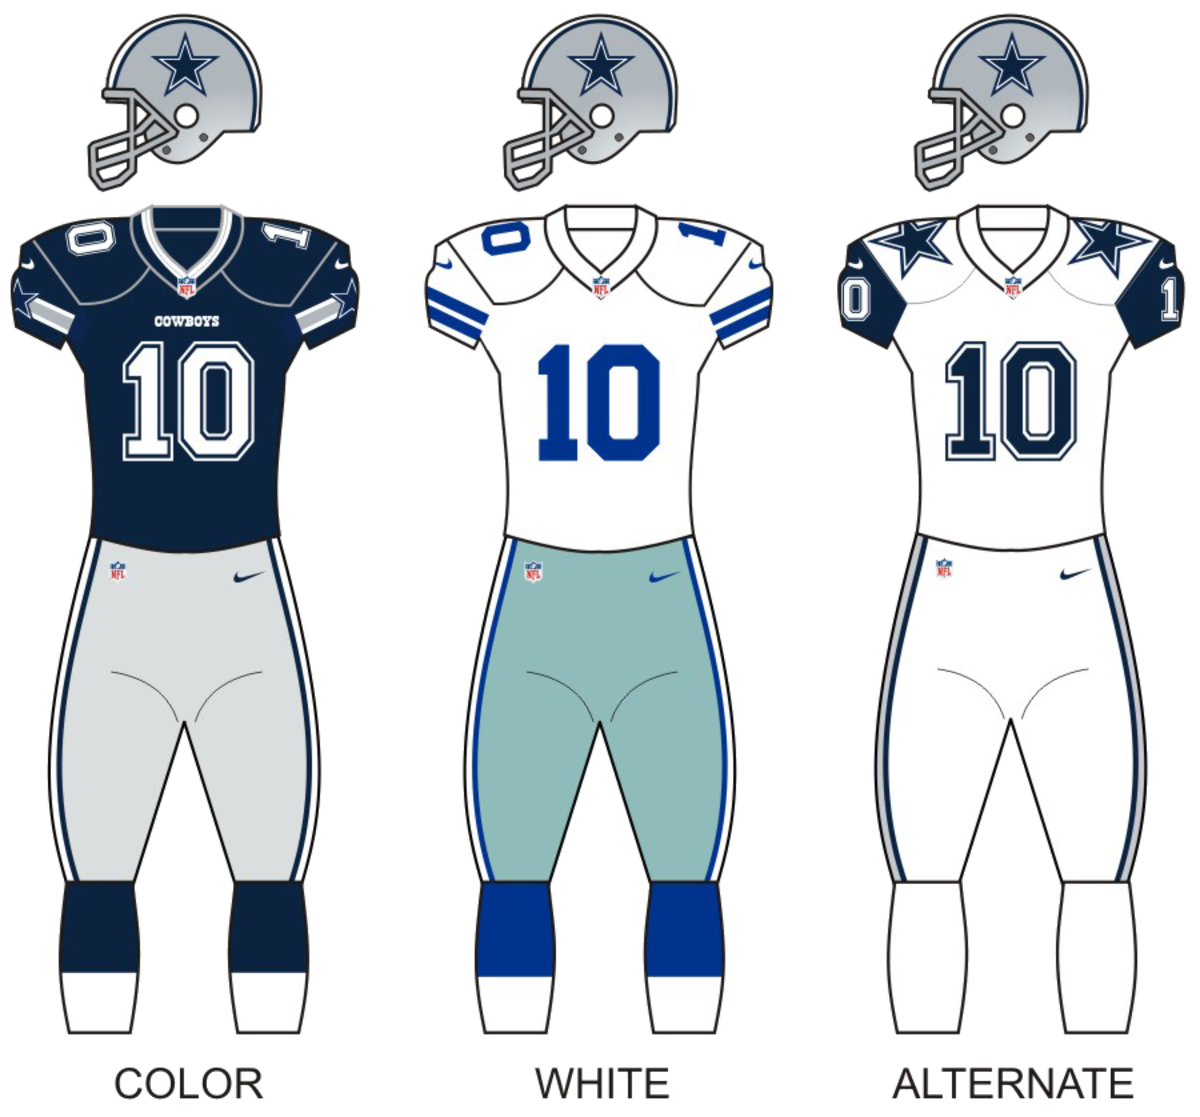 2016 Dallas Cowboys season - Wikipedia 252d62a55